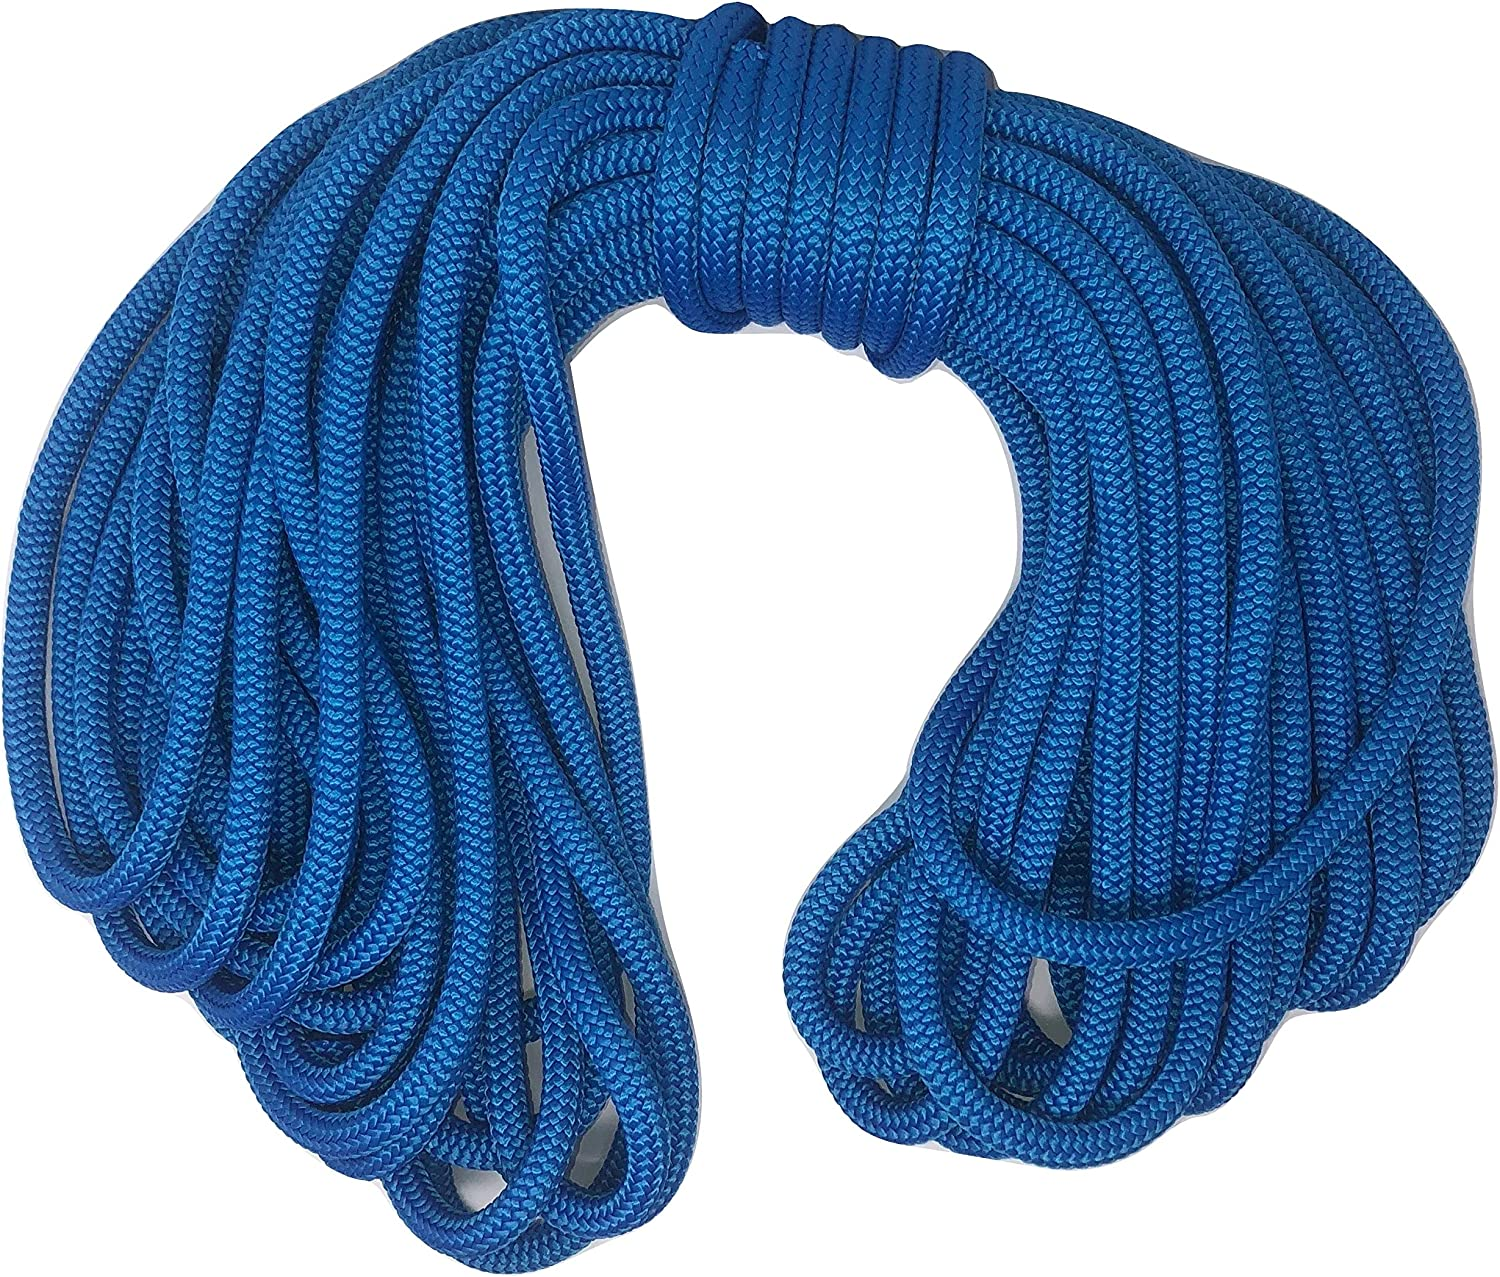 1 Low price 2 Inch by 150 Feet Nylon Rope Blue Braid Double 5% OFF